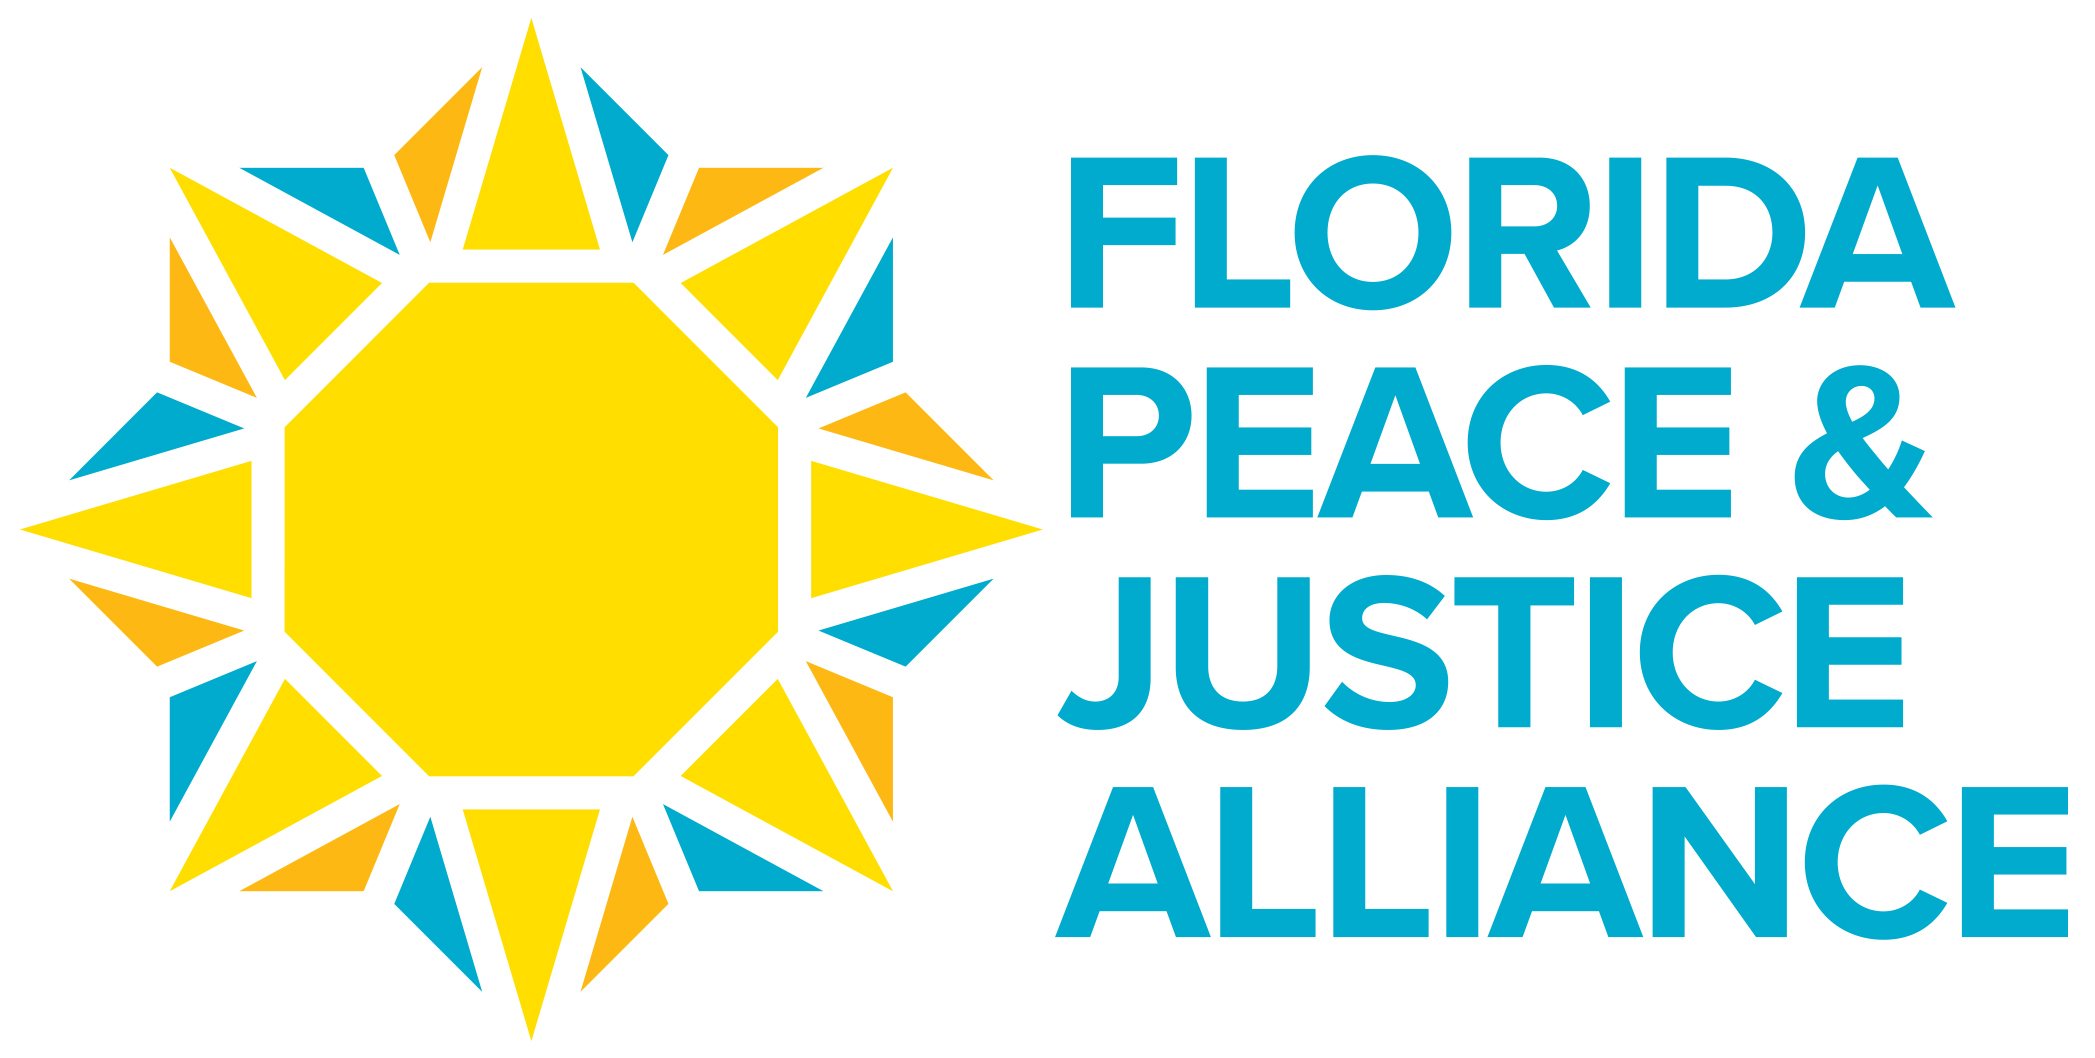 Florida Peace & Justice Alliance